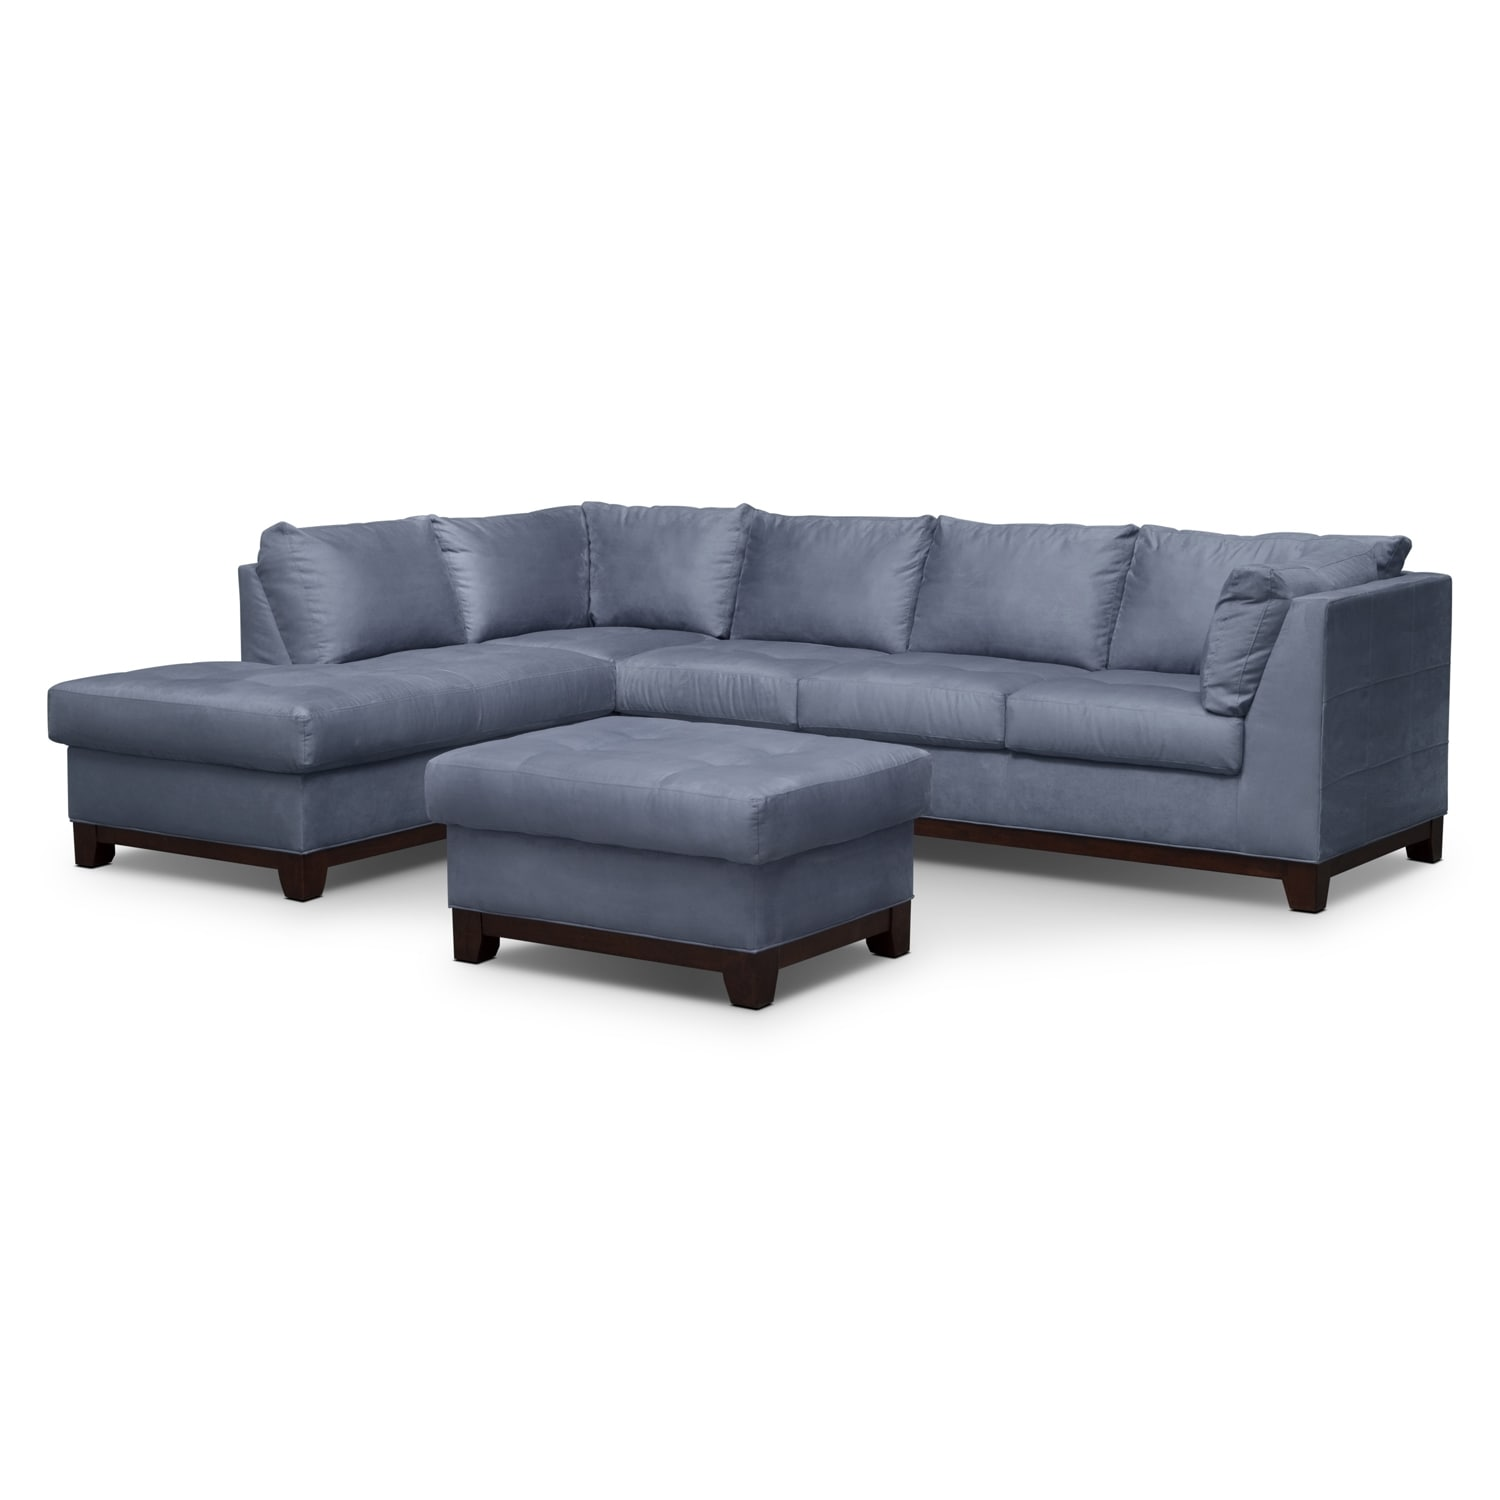 Soho 2-Piece Sectional with Left-Facing Chaise and Ottoman - Steel